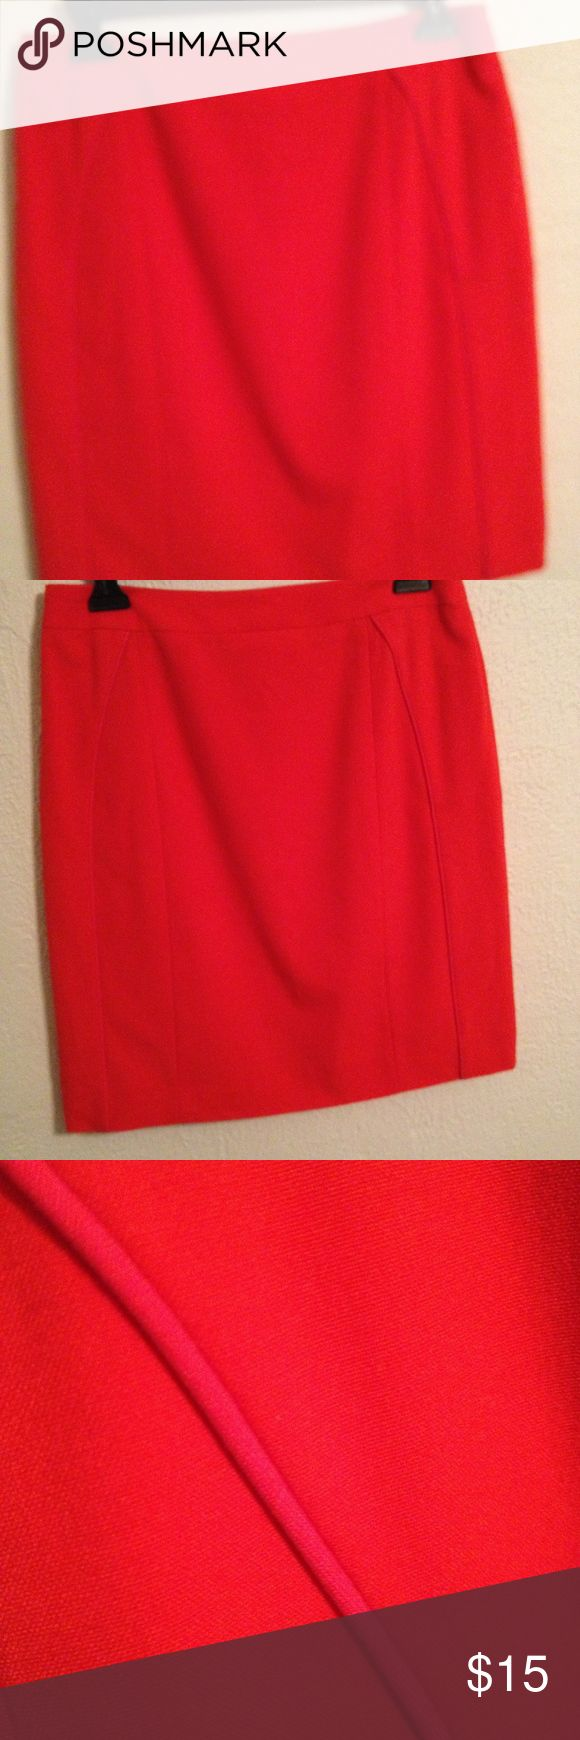 Hot red pencil skirt Red pencil skirt with hot pink piping, fully lined. Gianni Bini Skirts Pencil